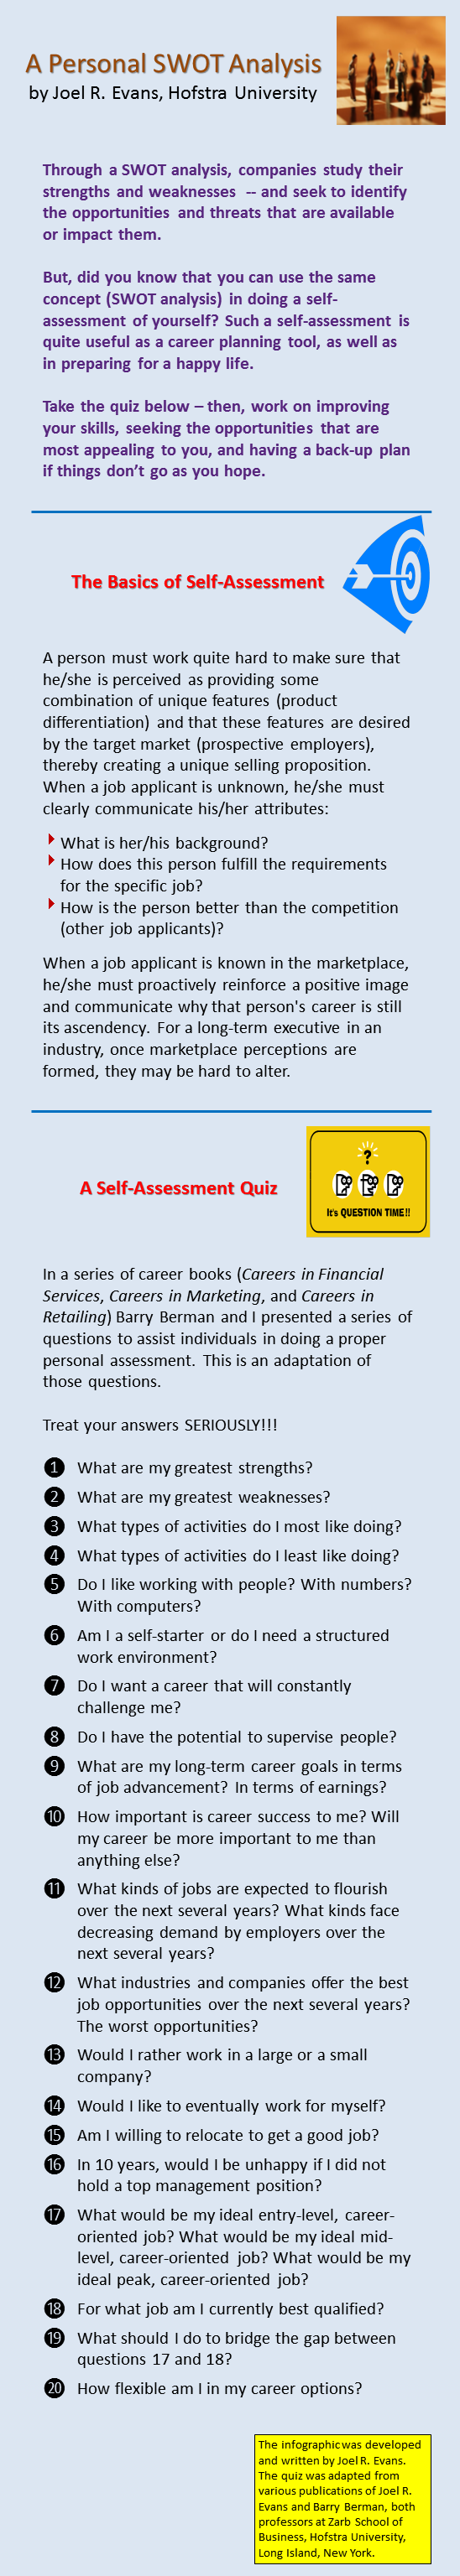 a personalized self assessment infographic evans on marketing